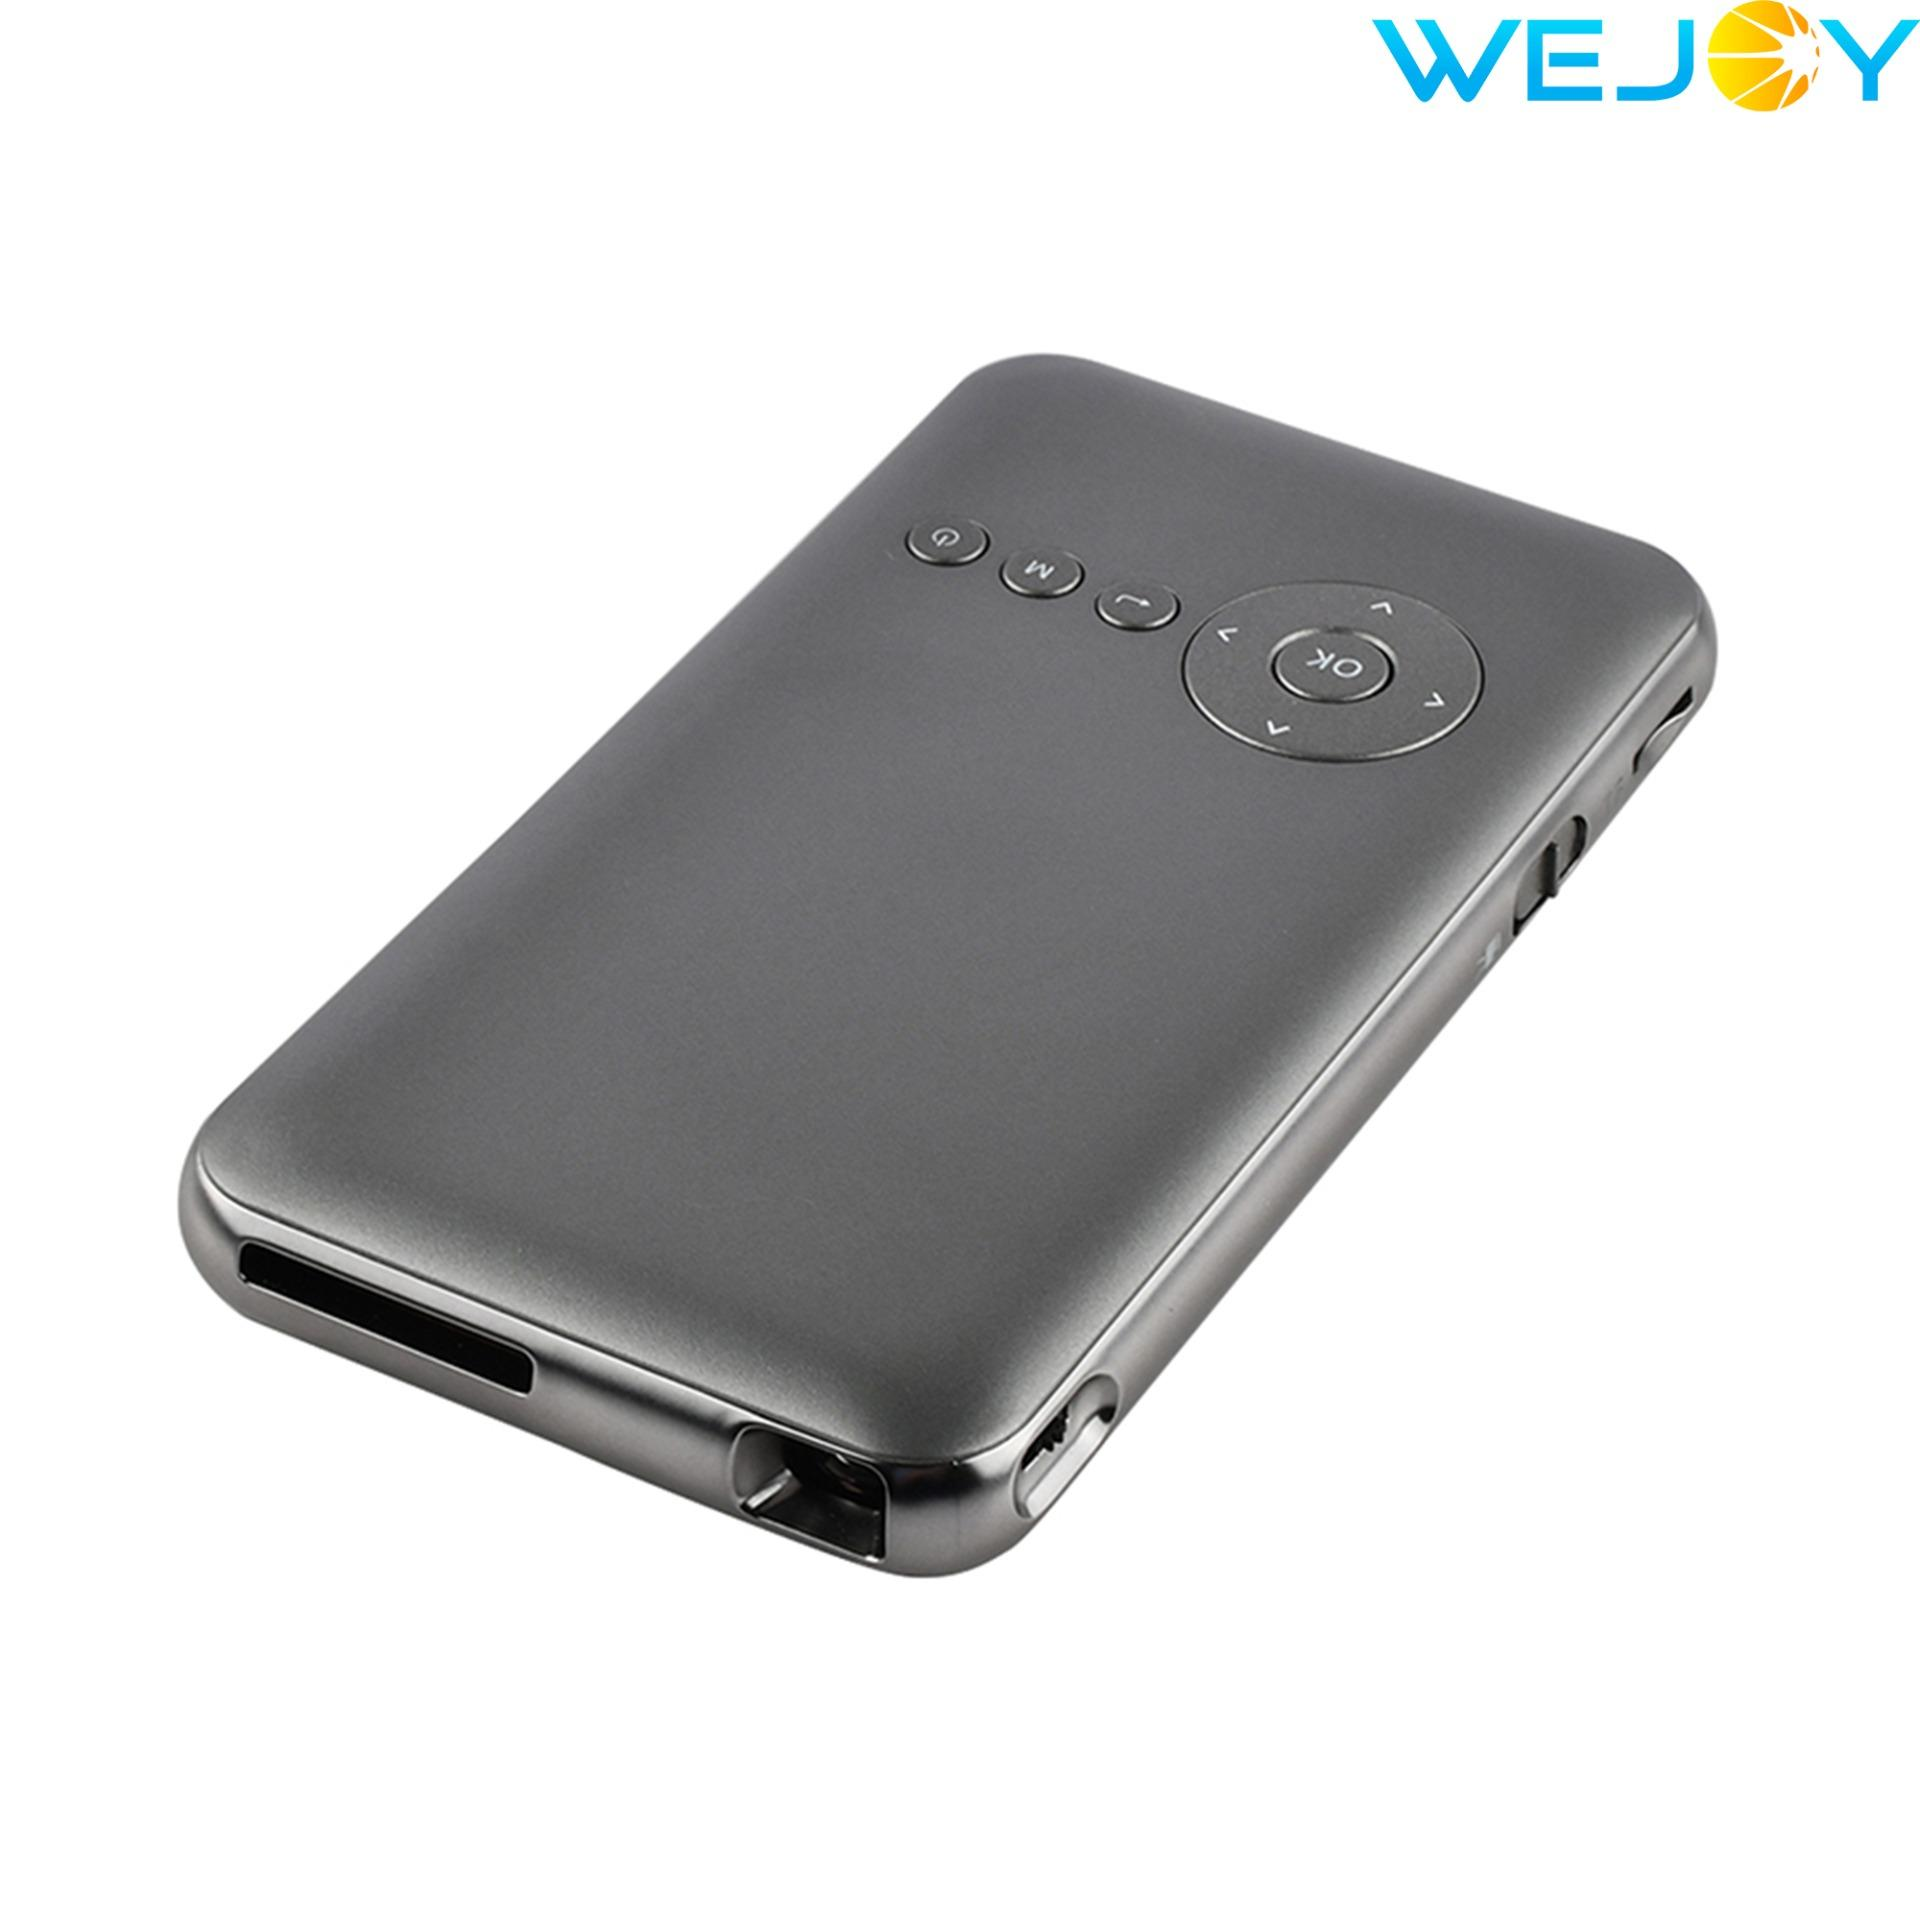 Buy Wejoy 1080P Portable Mini Wifi Projector Home Cinema Theater Dl S6 1G 16G Rom Wejoy Online